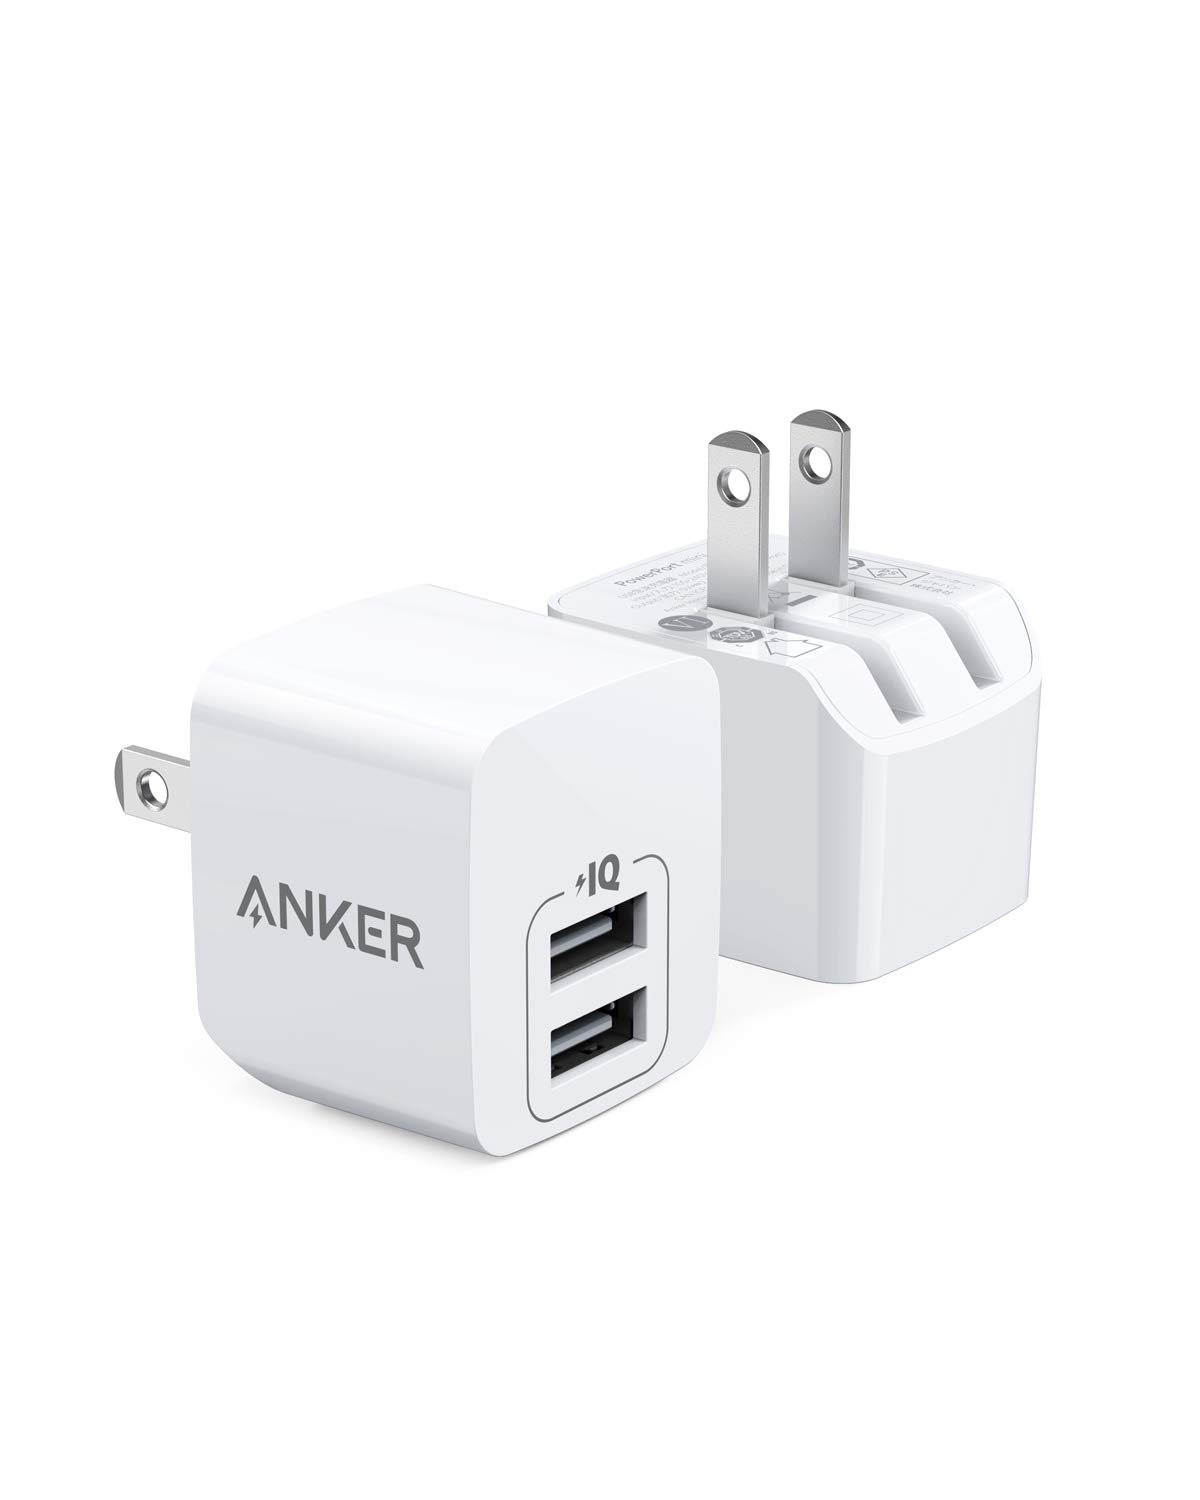 USB Charger, Anker 2-Pack Dual Port 12W Wall Charger with Foldable Plug, PowerPort Mini for iPhone Xs/XS Max/XR/X/8/8 Plus/7/6S/6S Plus, iPad, Samsung Galaxy Note 5/ Note 4, HTC, Moto, and More